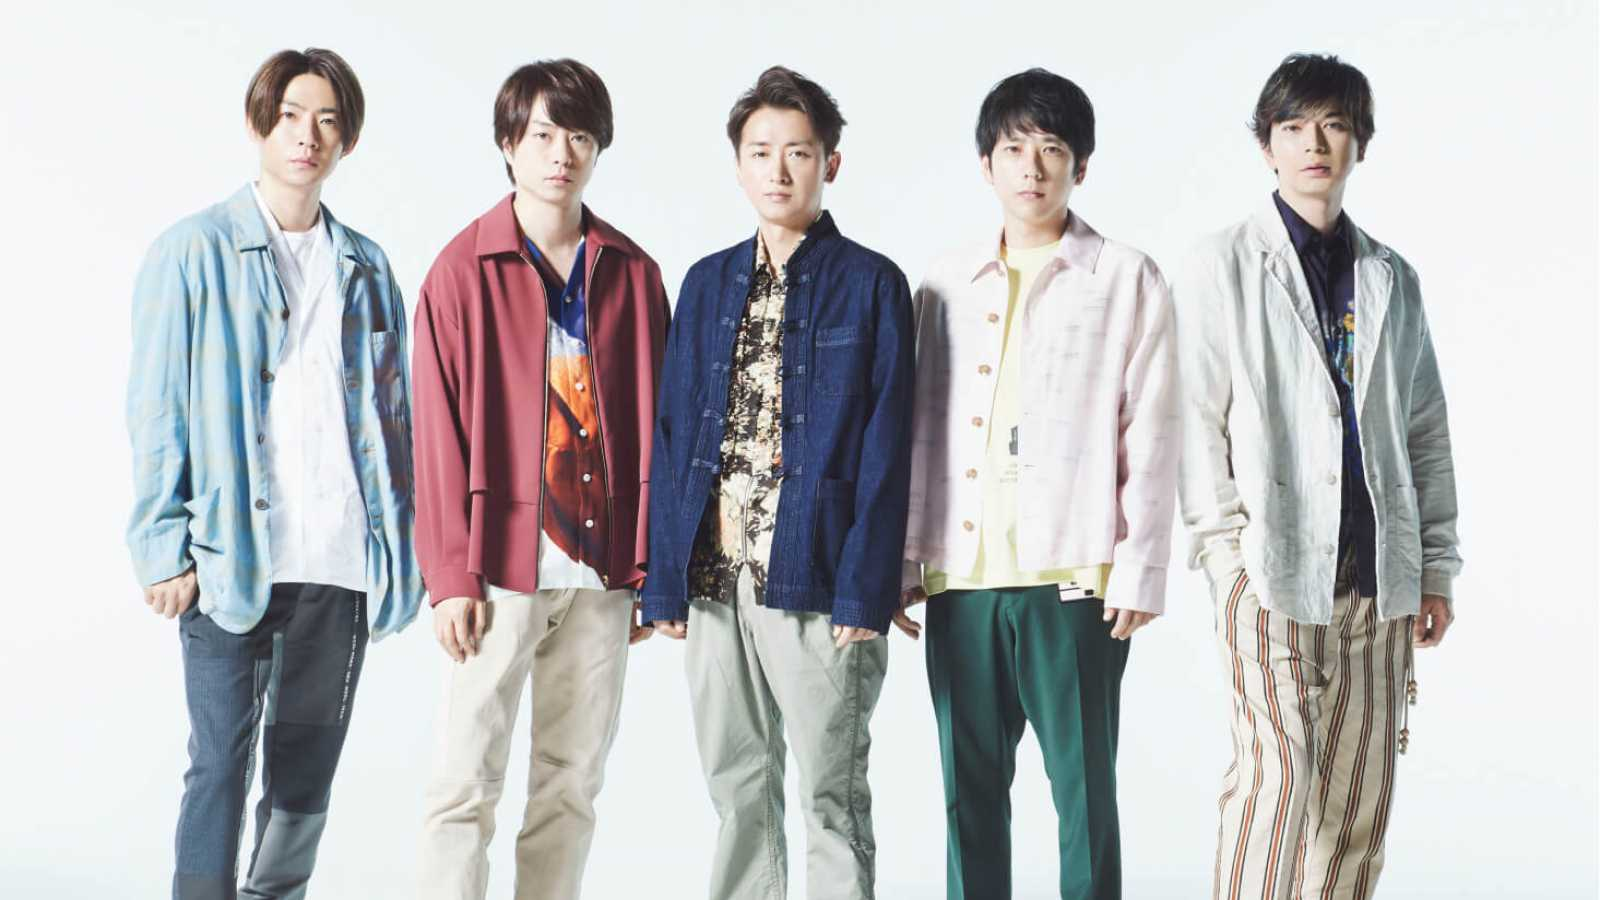 ARASHI © JStorm. All rights reserved.